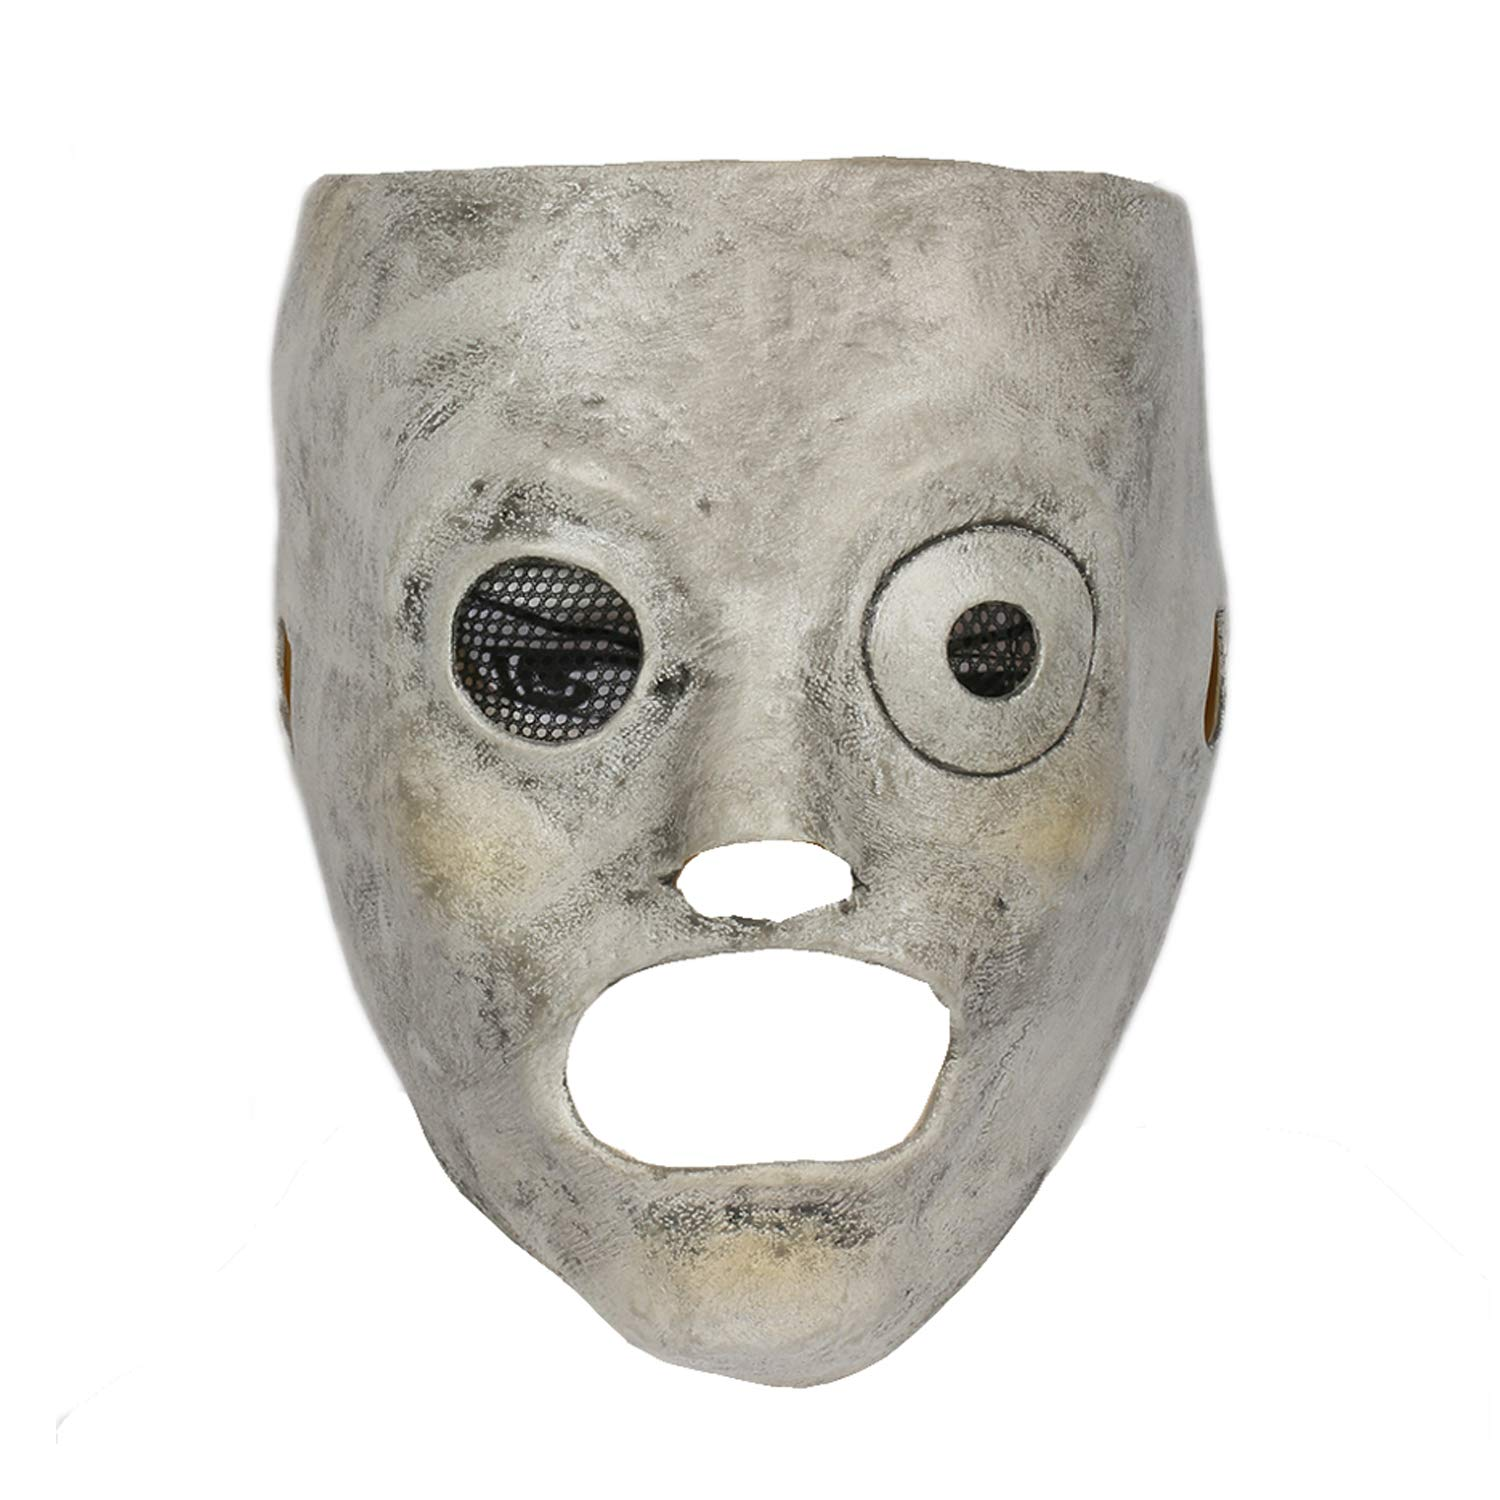 xcoser Corey Taylor Mask Cosplay Costume Accessories for Adult Halloween